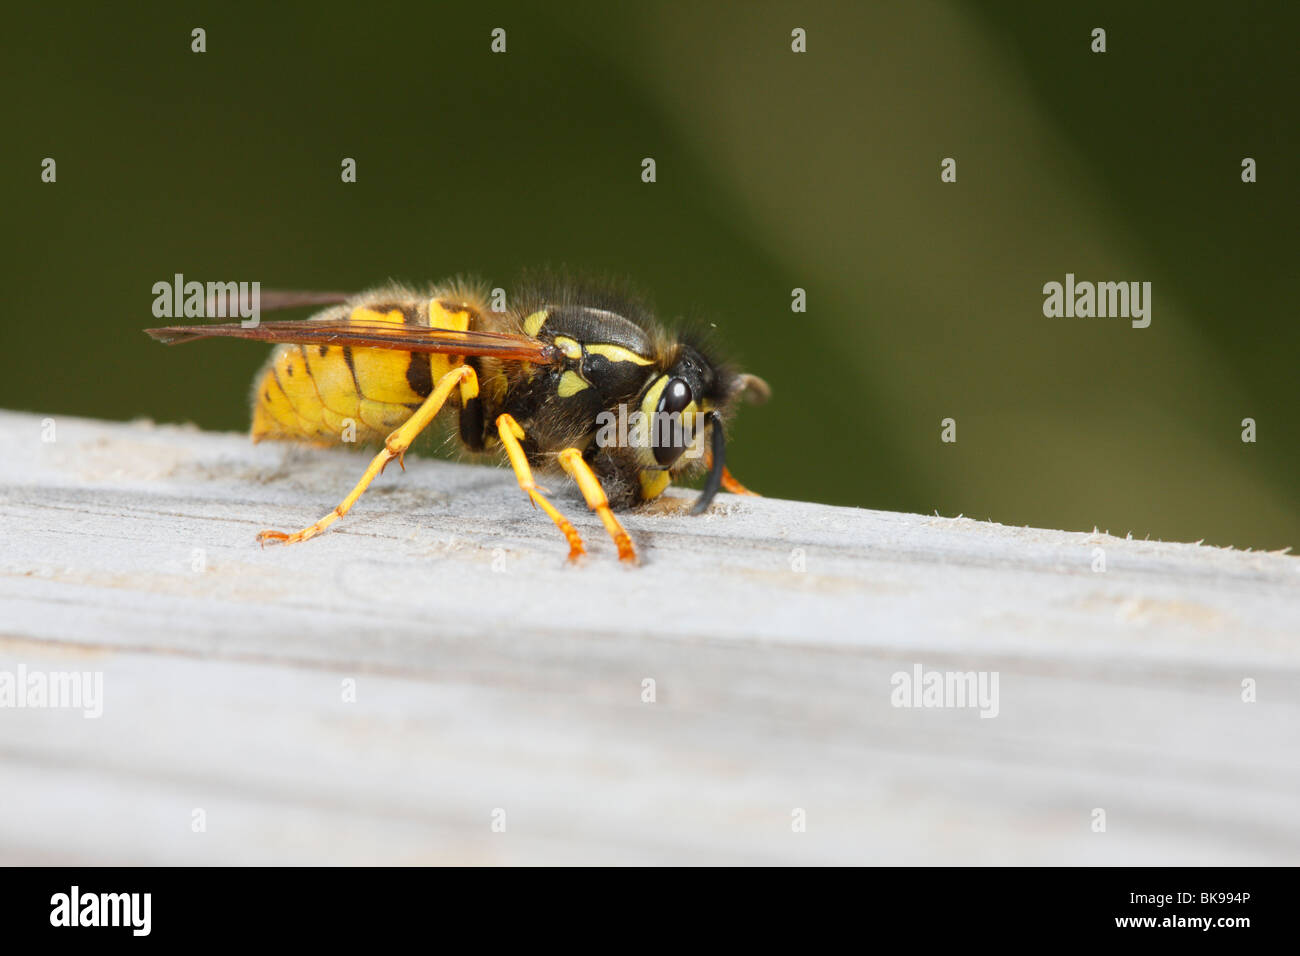 Common  Wasp chewing 0n handrail for nesting material - Stock Image